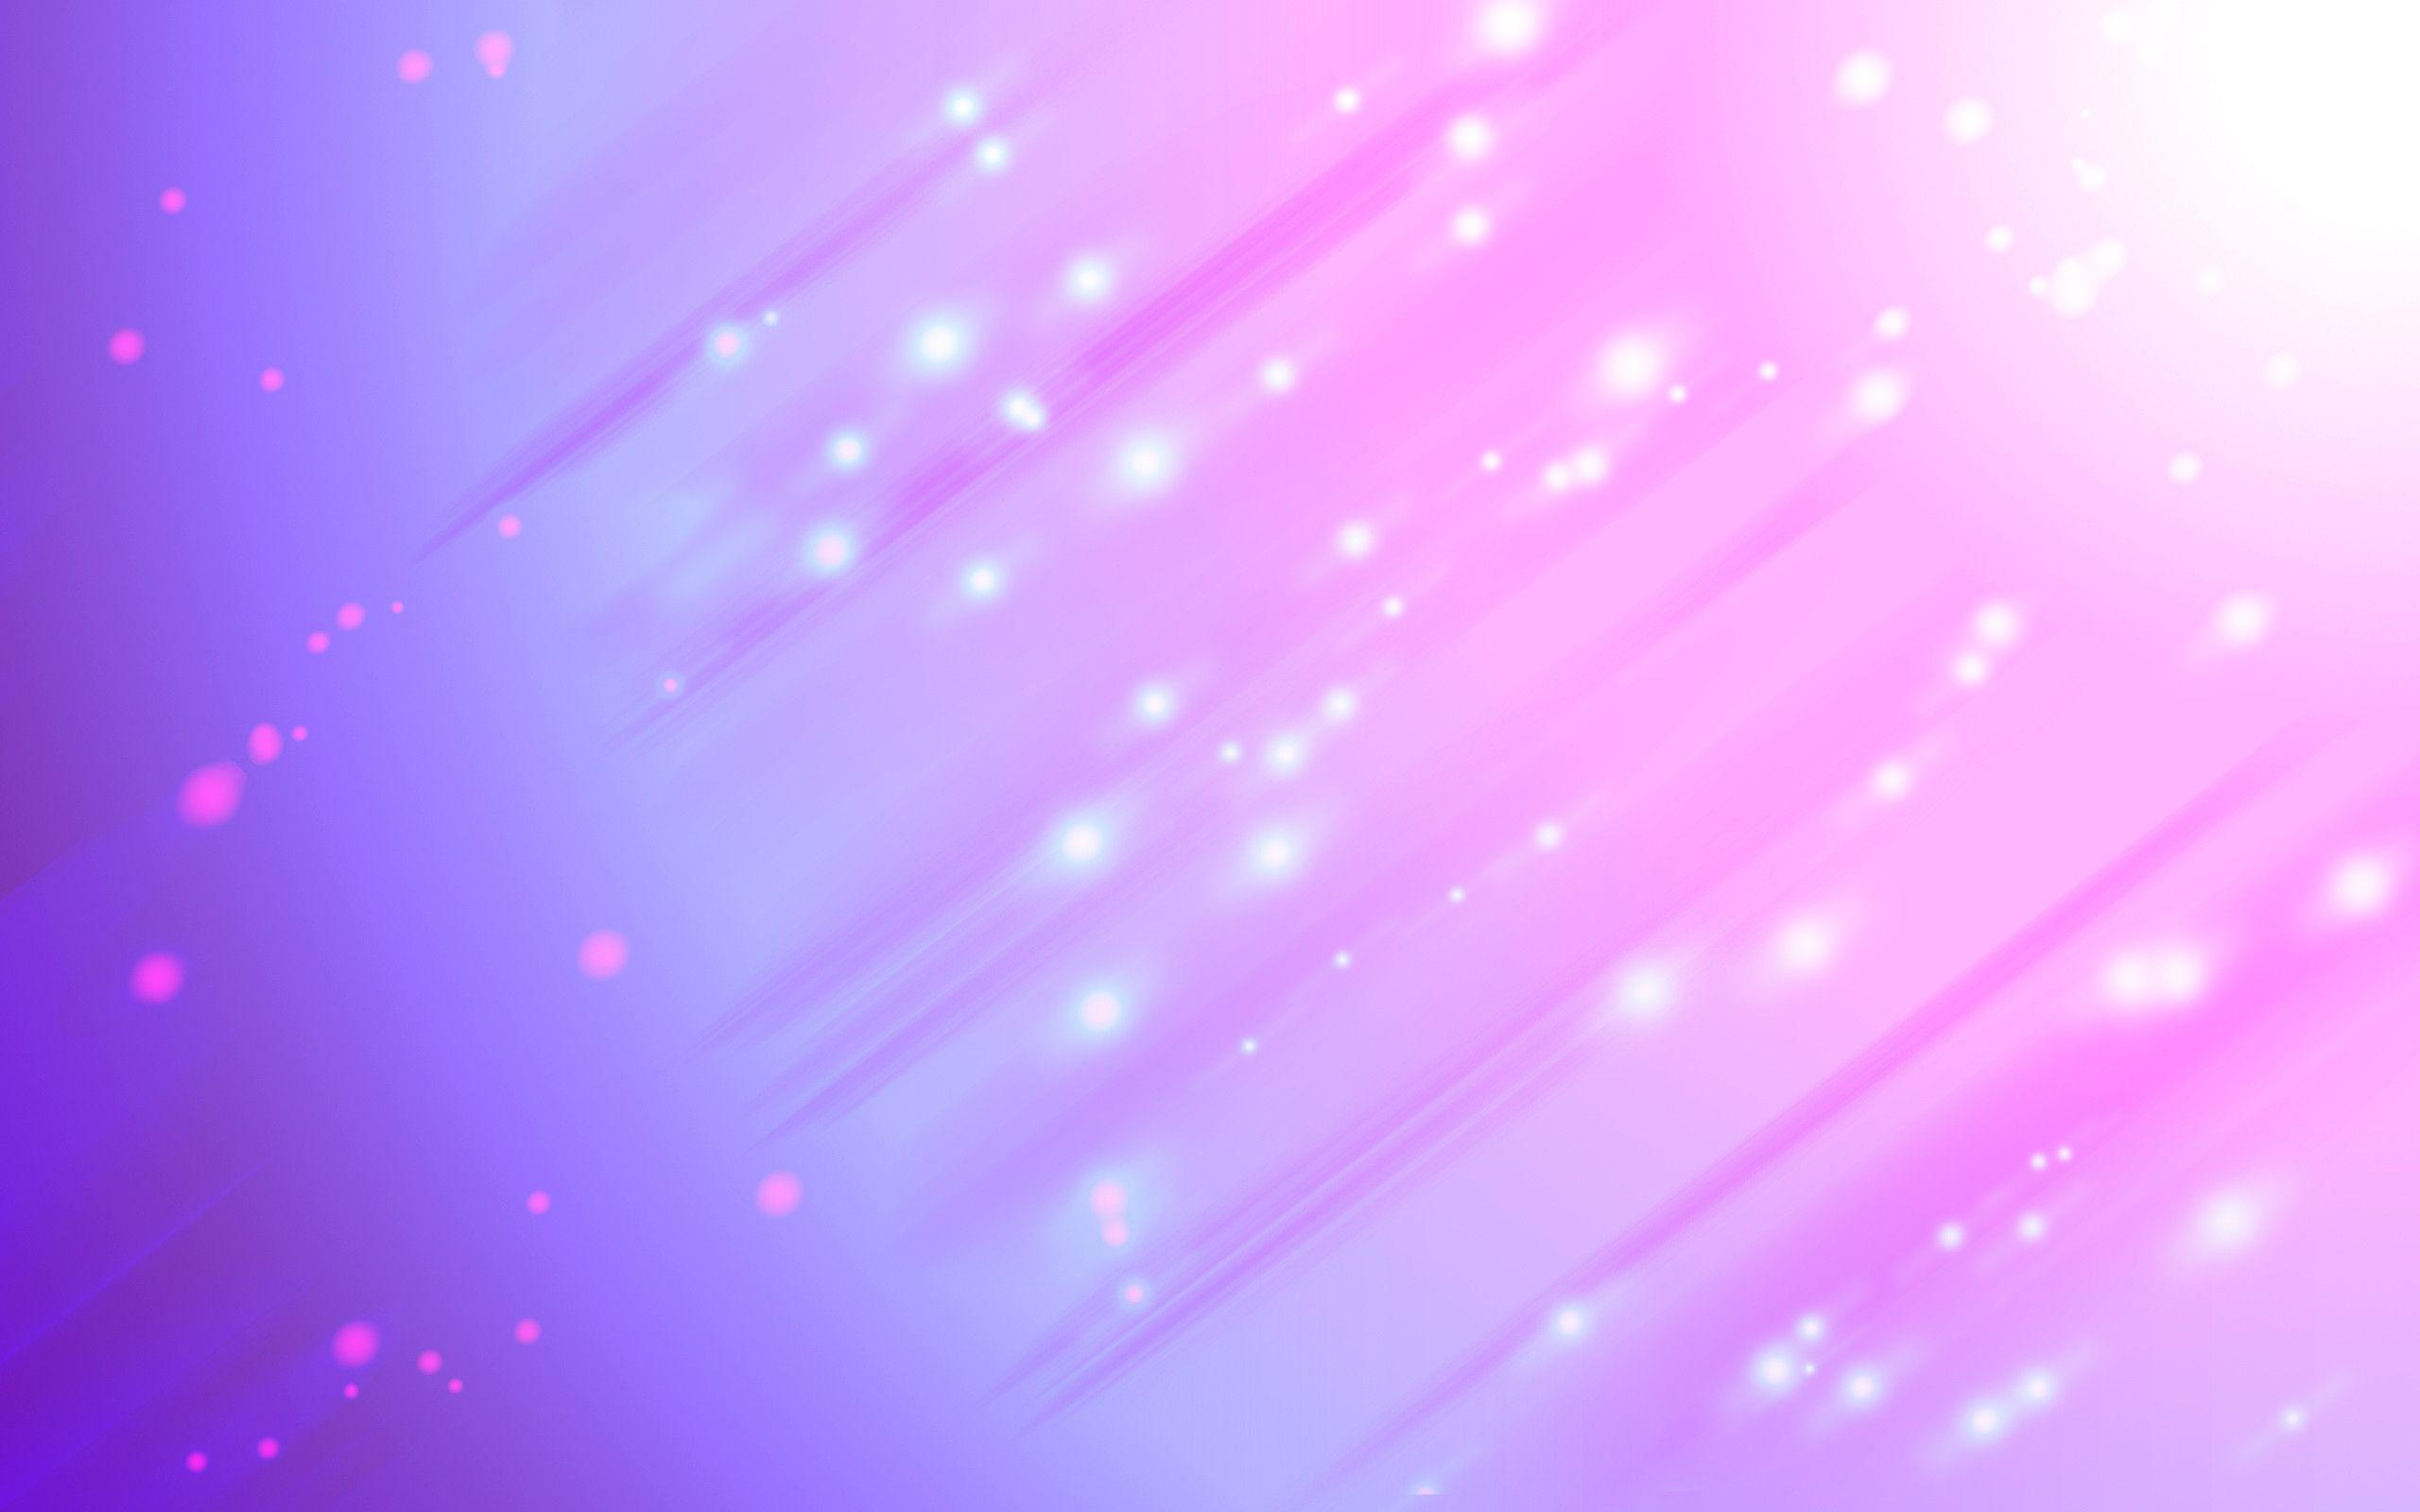 Light Pink Abstract Wallpaper Hd Background 9 HD Wallpapers ...